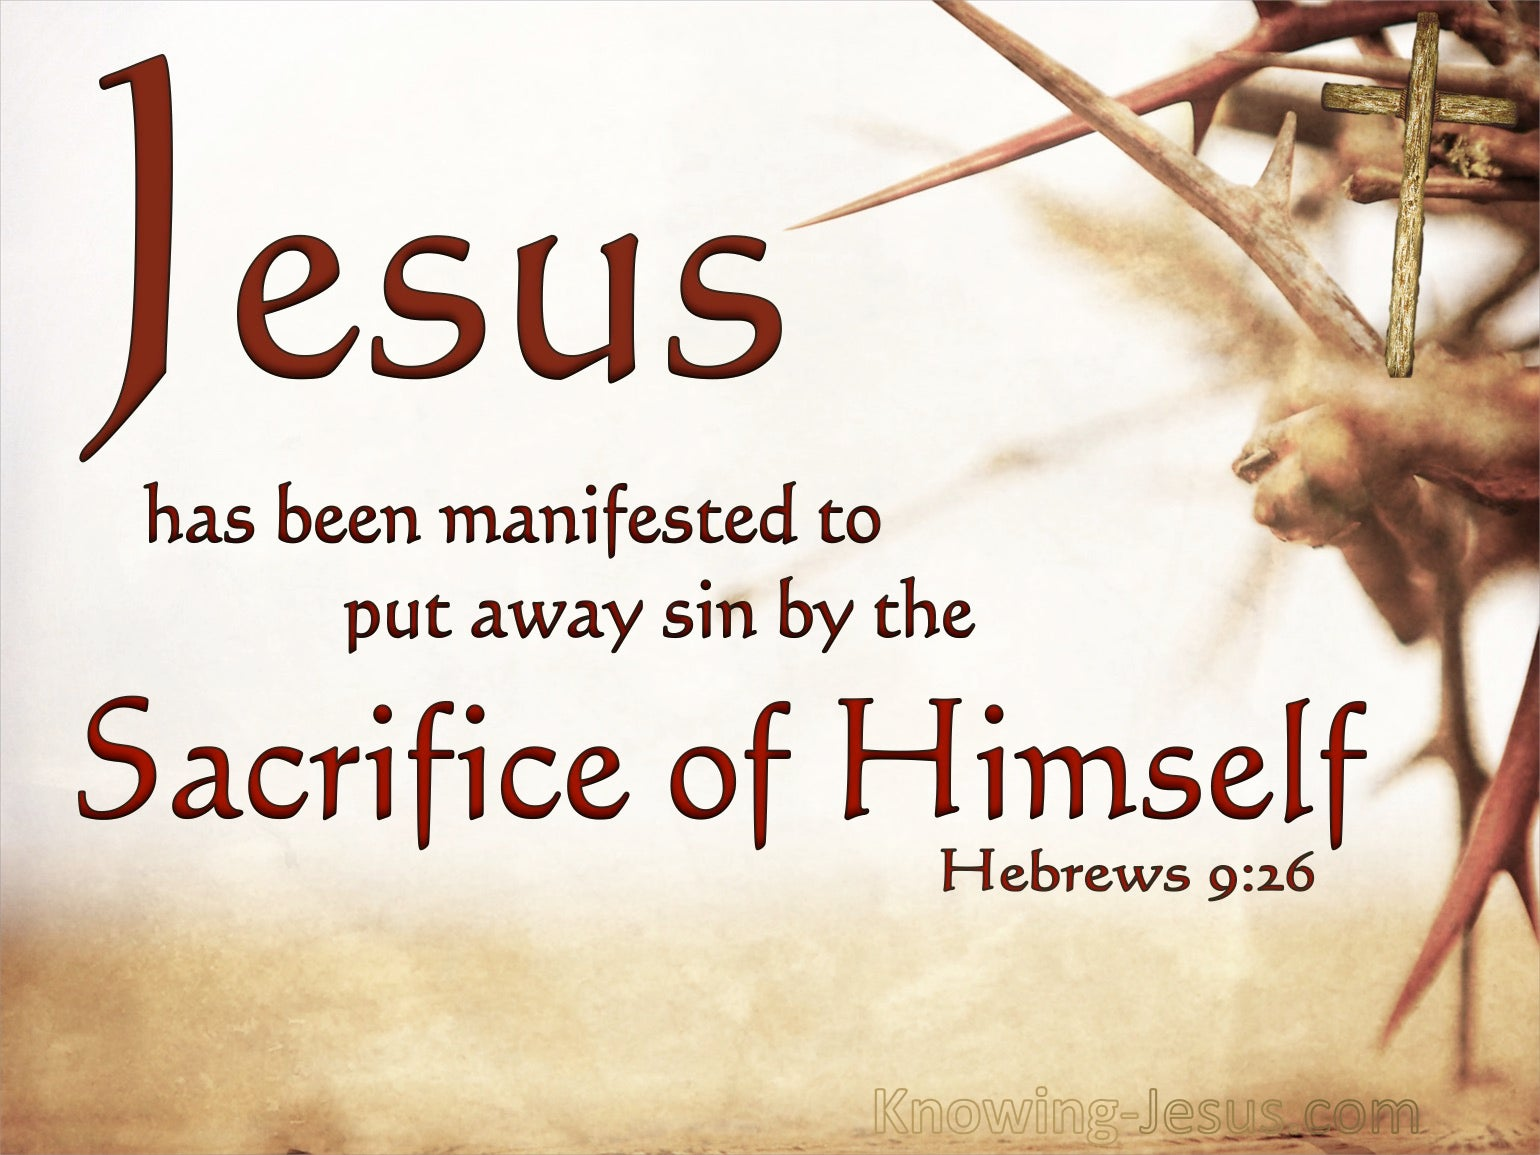 What Does Hebrews 9:26 Mean?